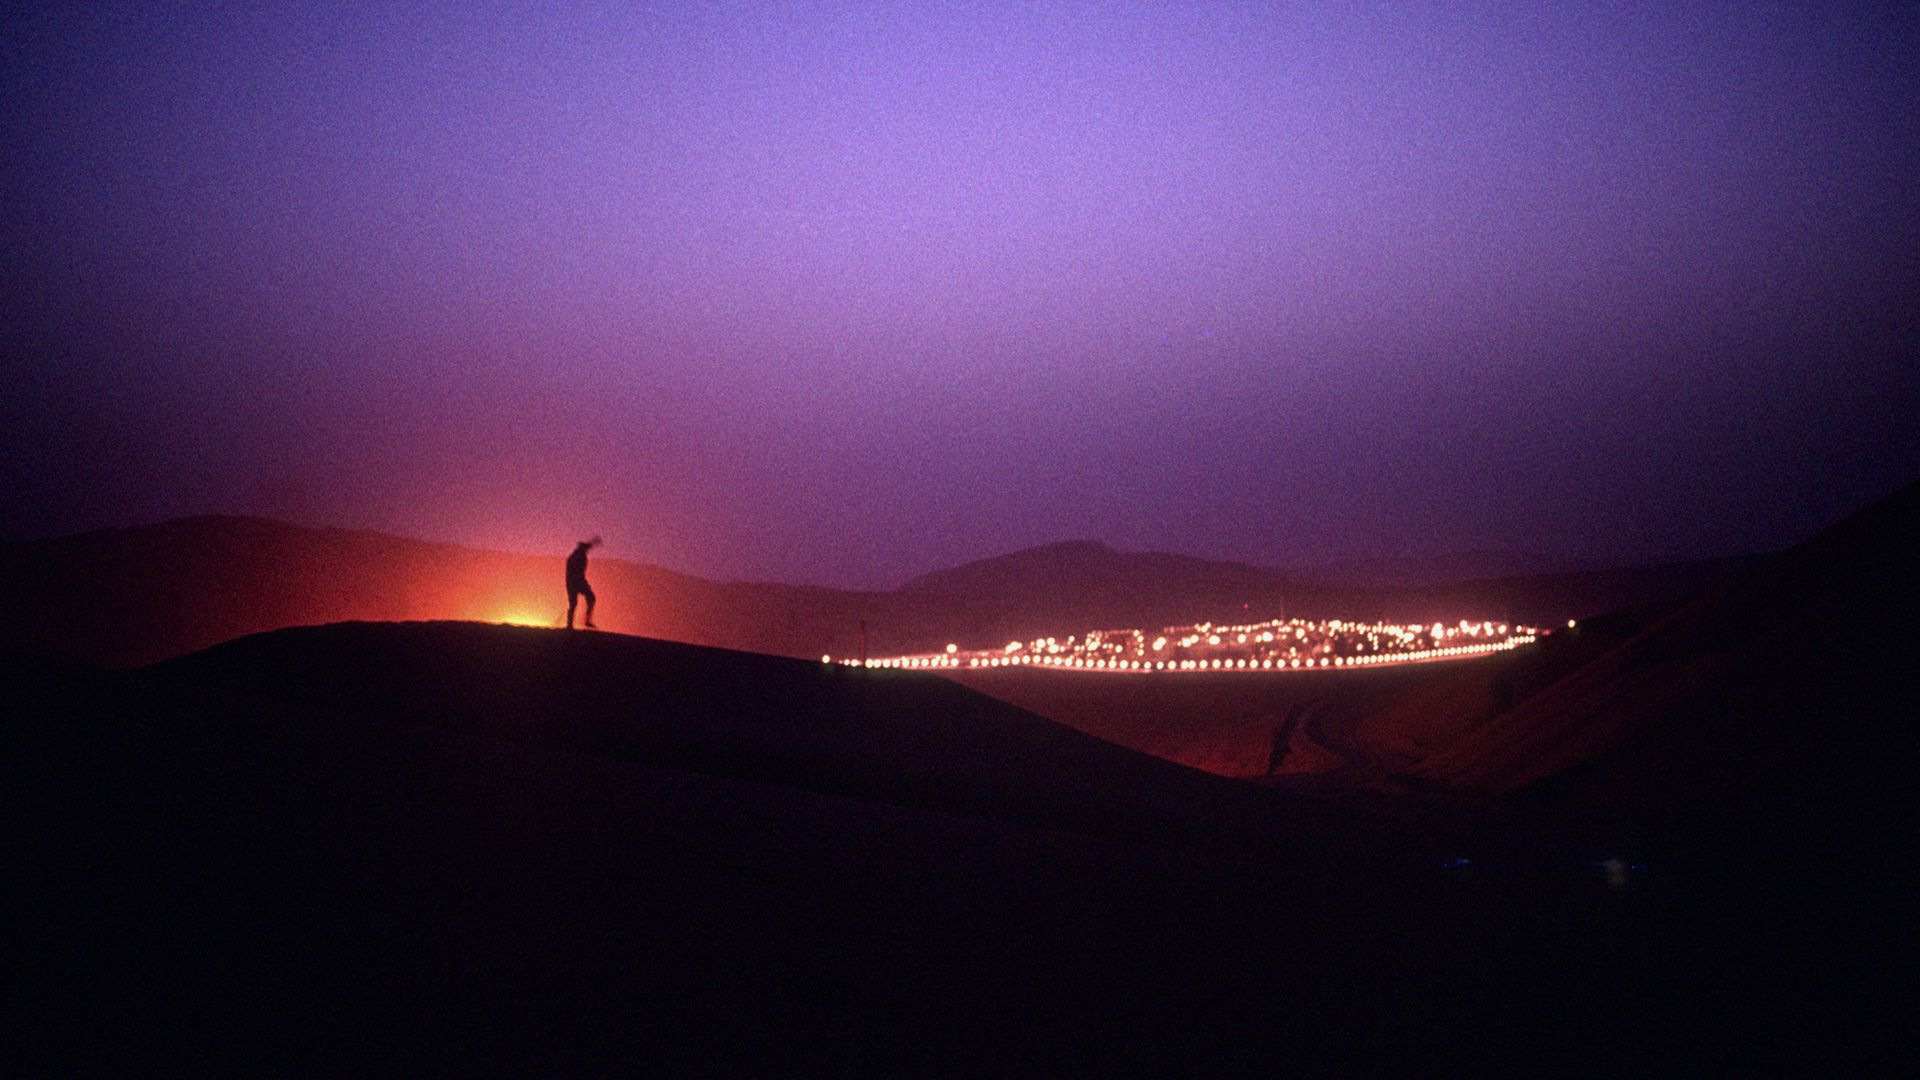 A man stands on a sand dune at night outside of a Saudi Aramco oil field complex